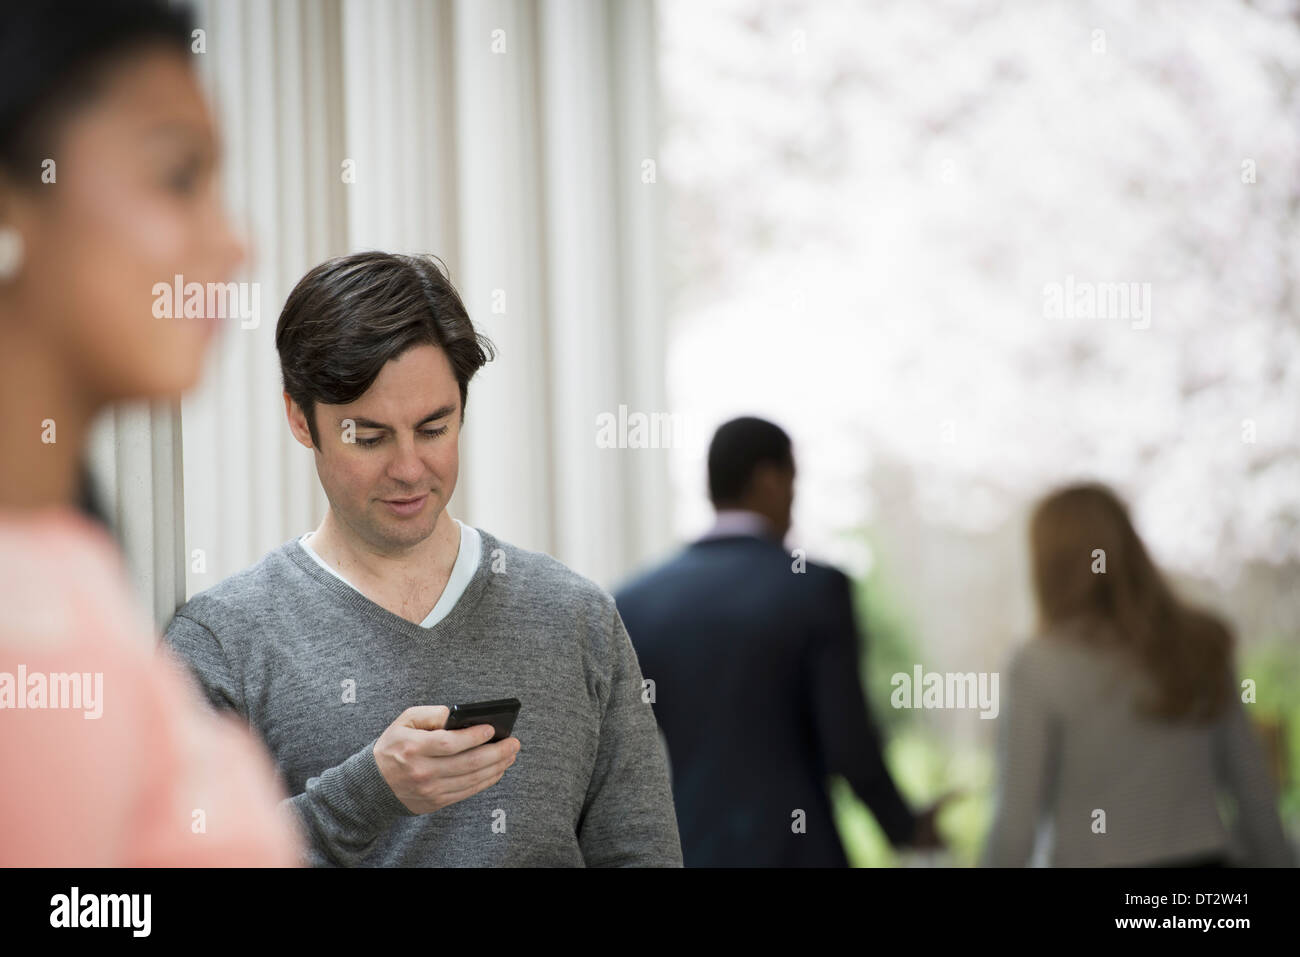 Young people springtime Men and women Two people one checking his phone Back view of two people in the park - Stock Image